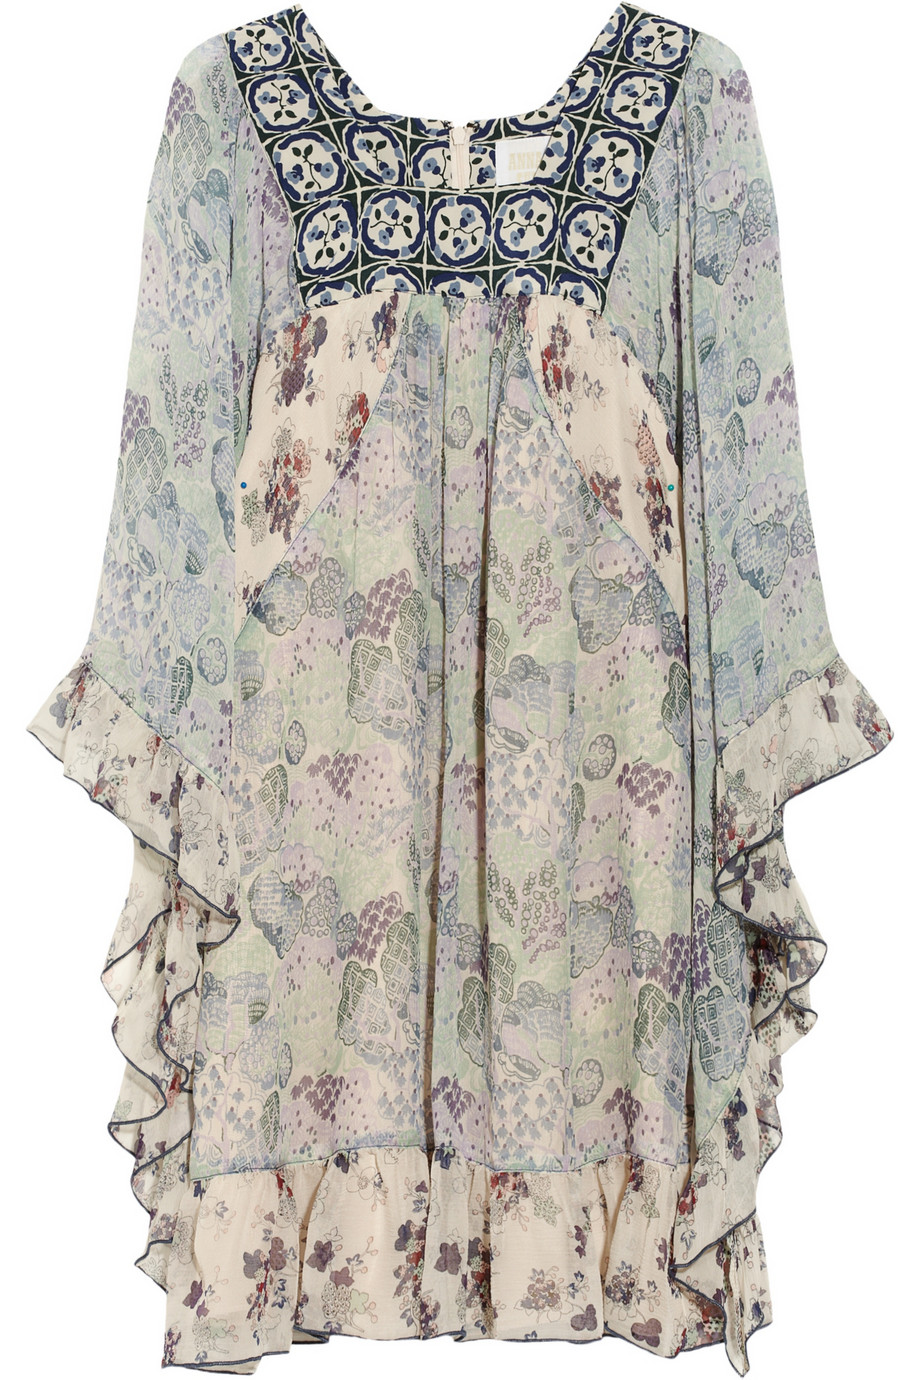 Anna Sui Dresses On Sale View Fullscreen Anna Sui